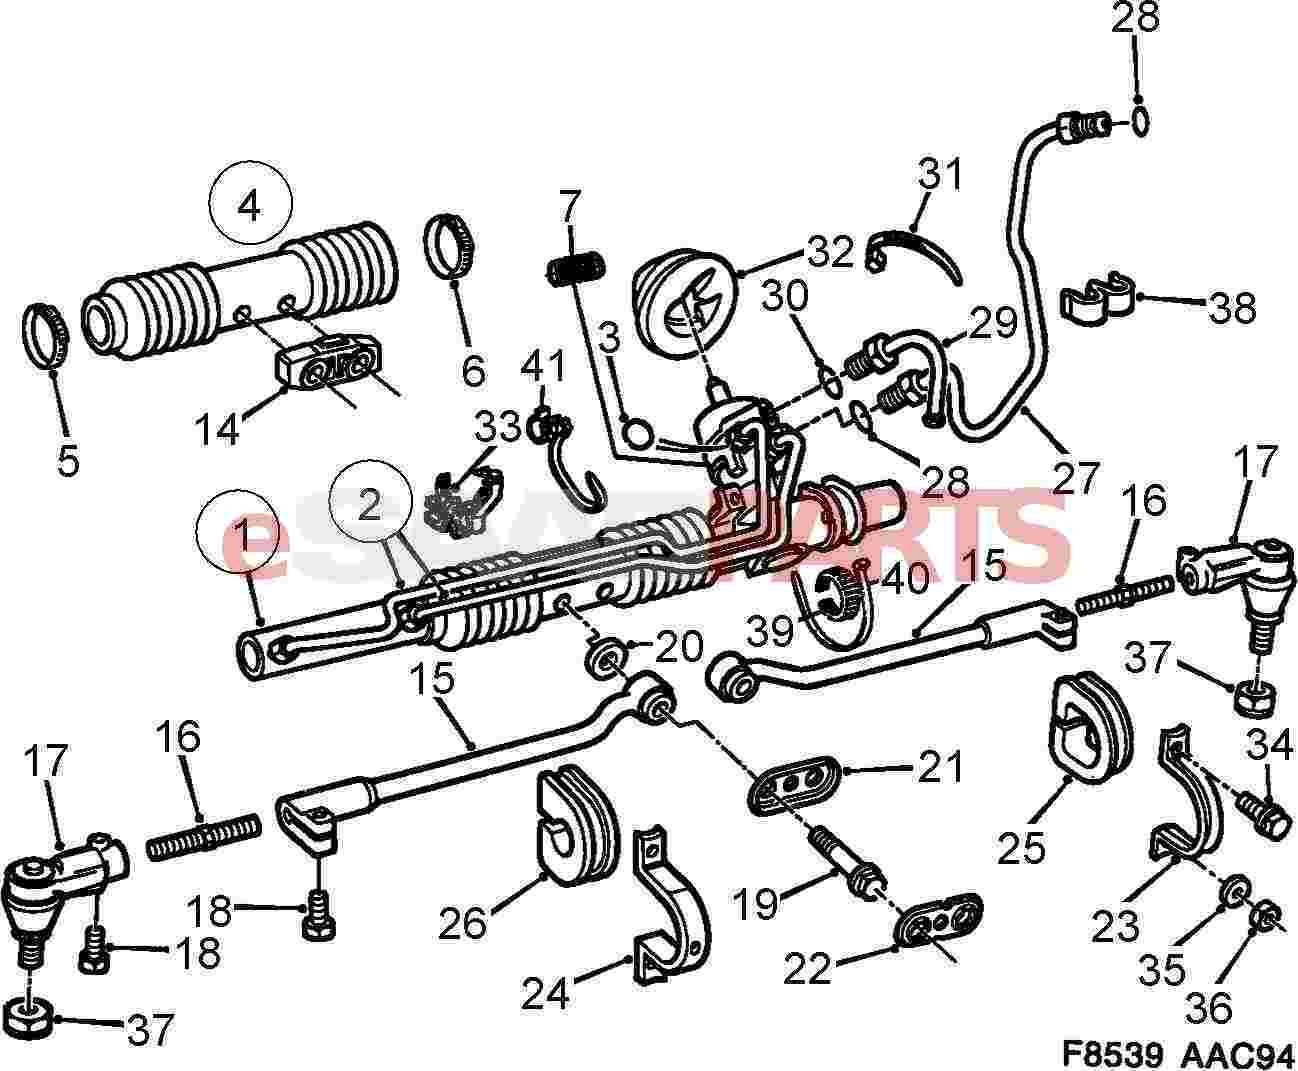 saab 900 front suspension diagram  saab  auto parts